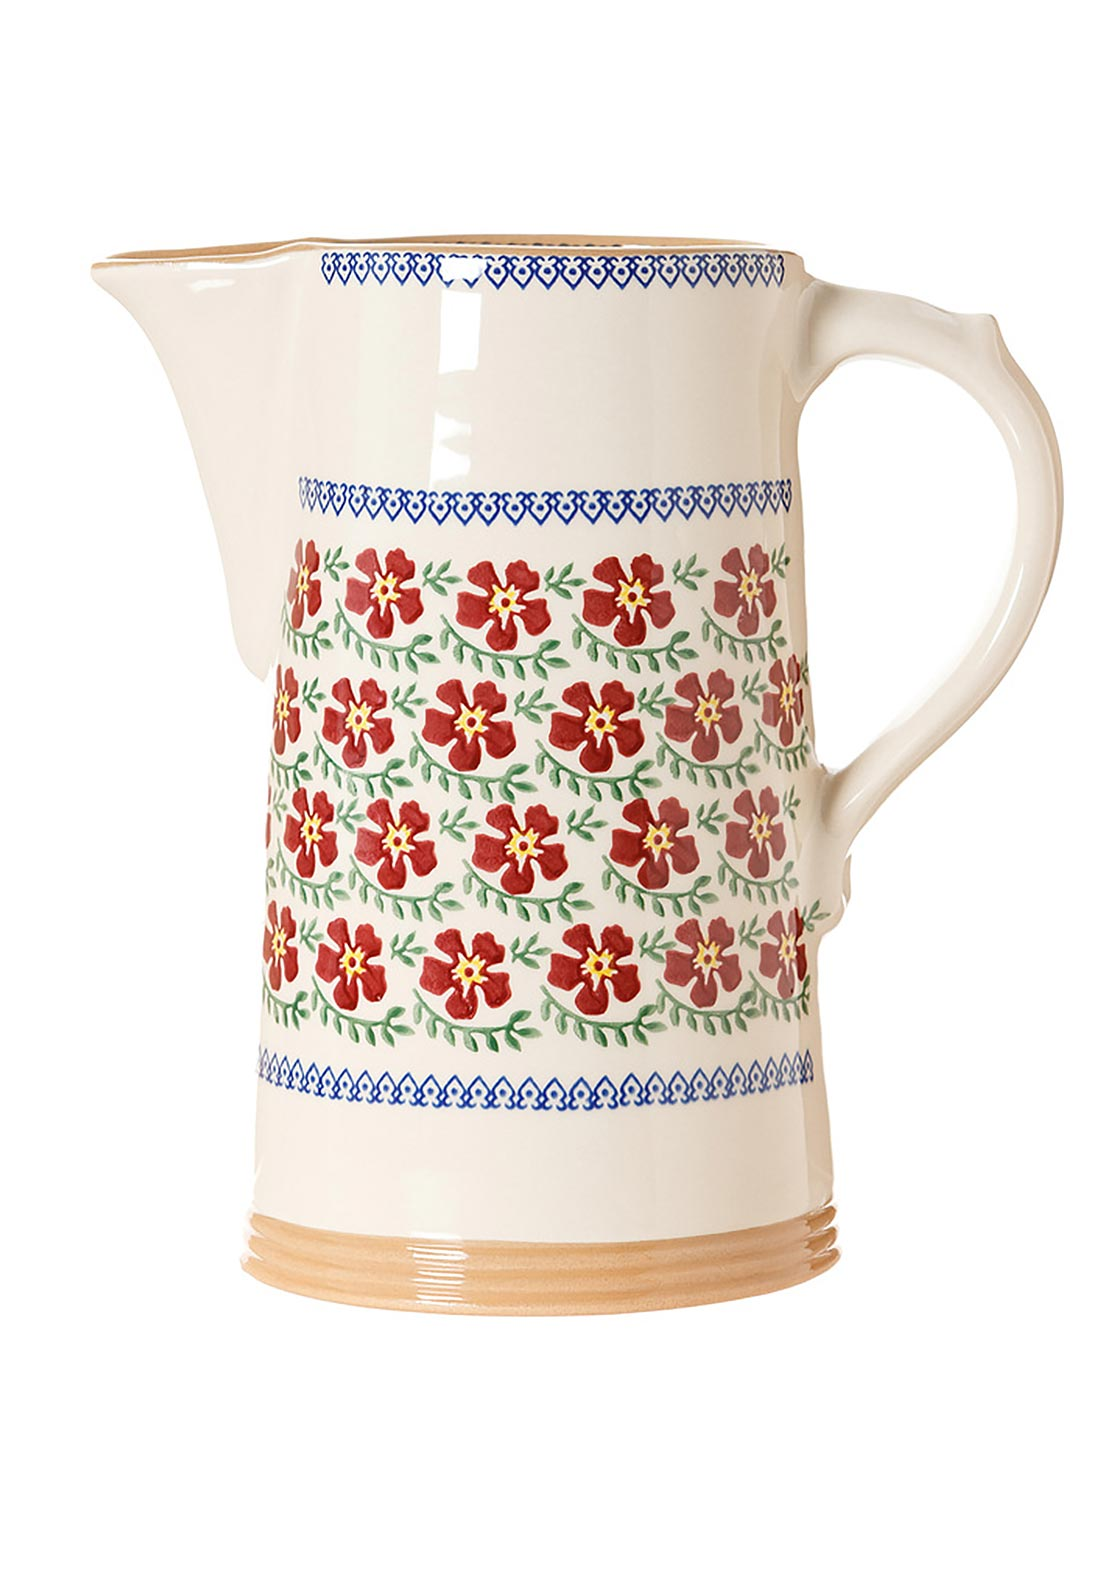 Nicholas Mosse Pottery Old Rose Jug, Extra-Large